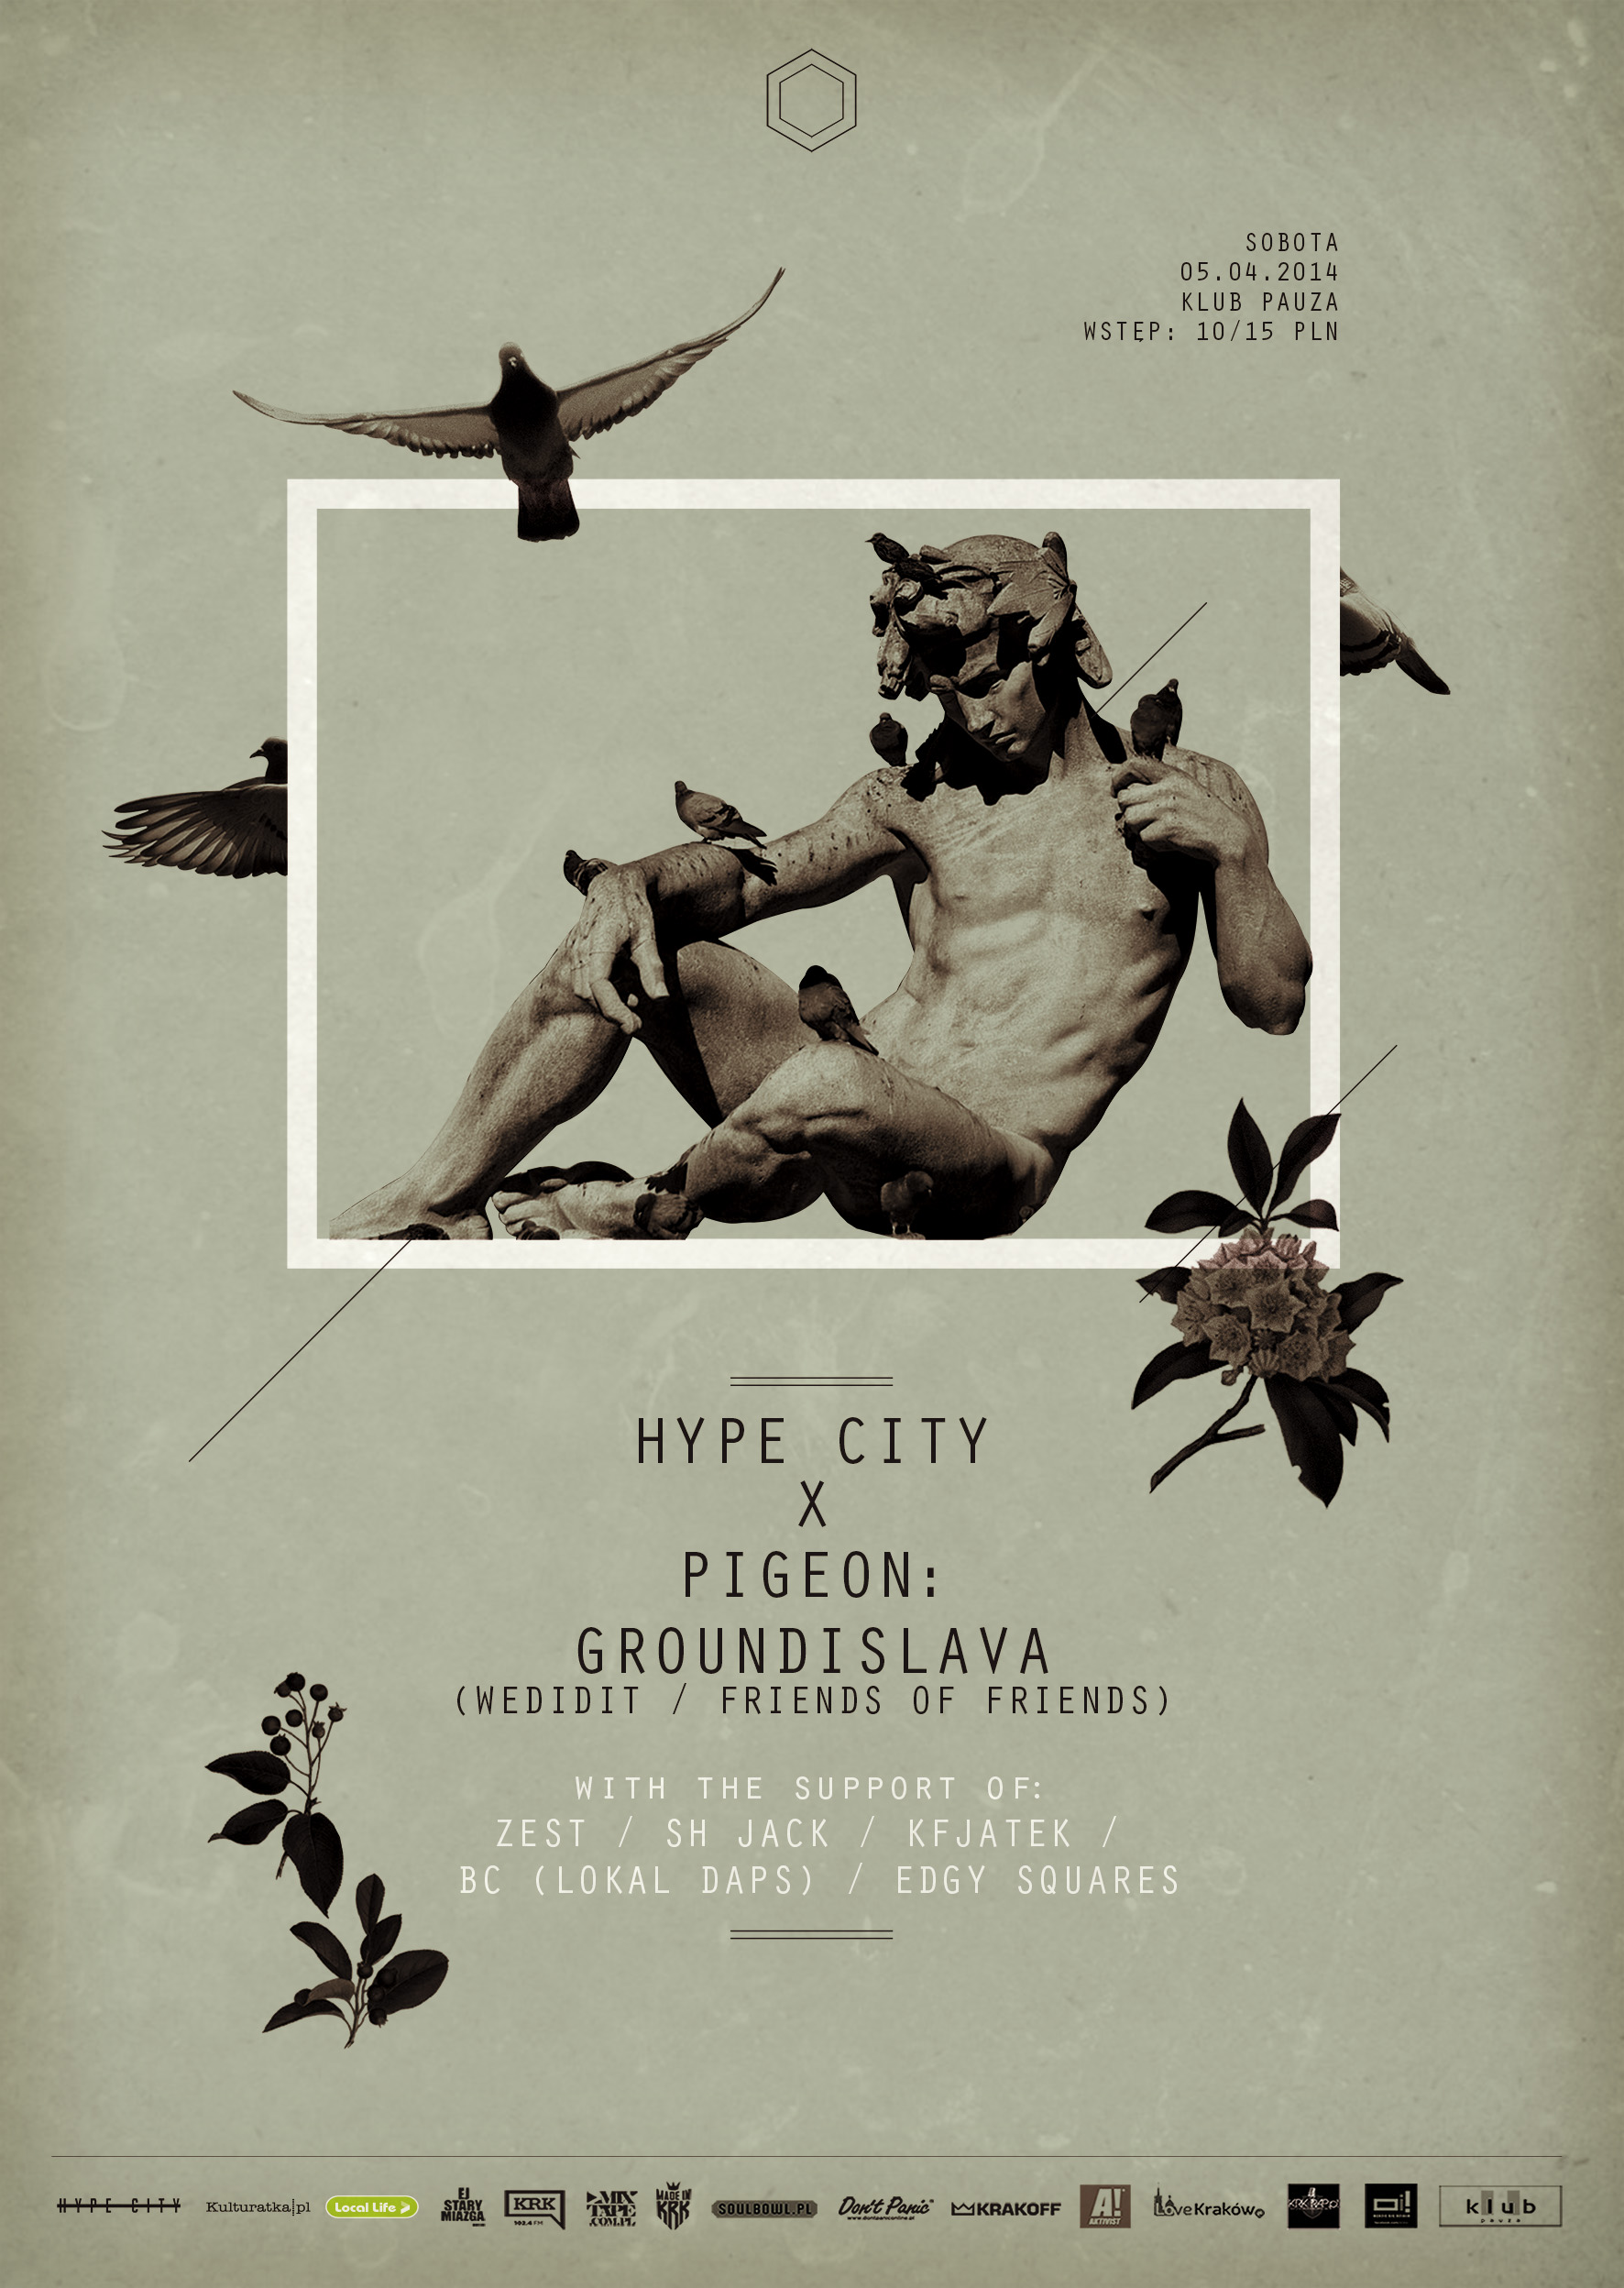 HYPE CITY x PIGEON: GROUNDISLAVA (LOS ANGELES / WEDIDIT / Friends Of Friends)